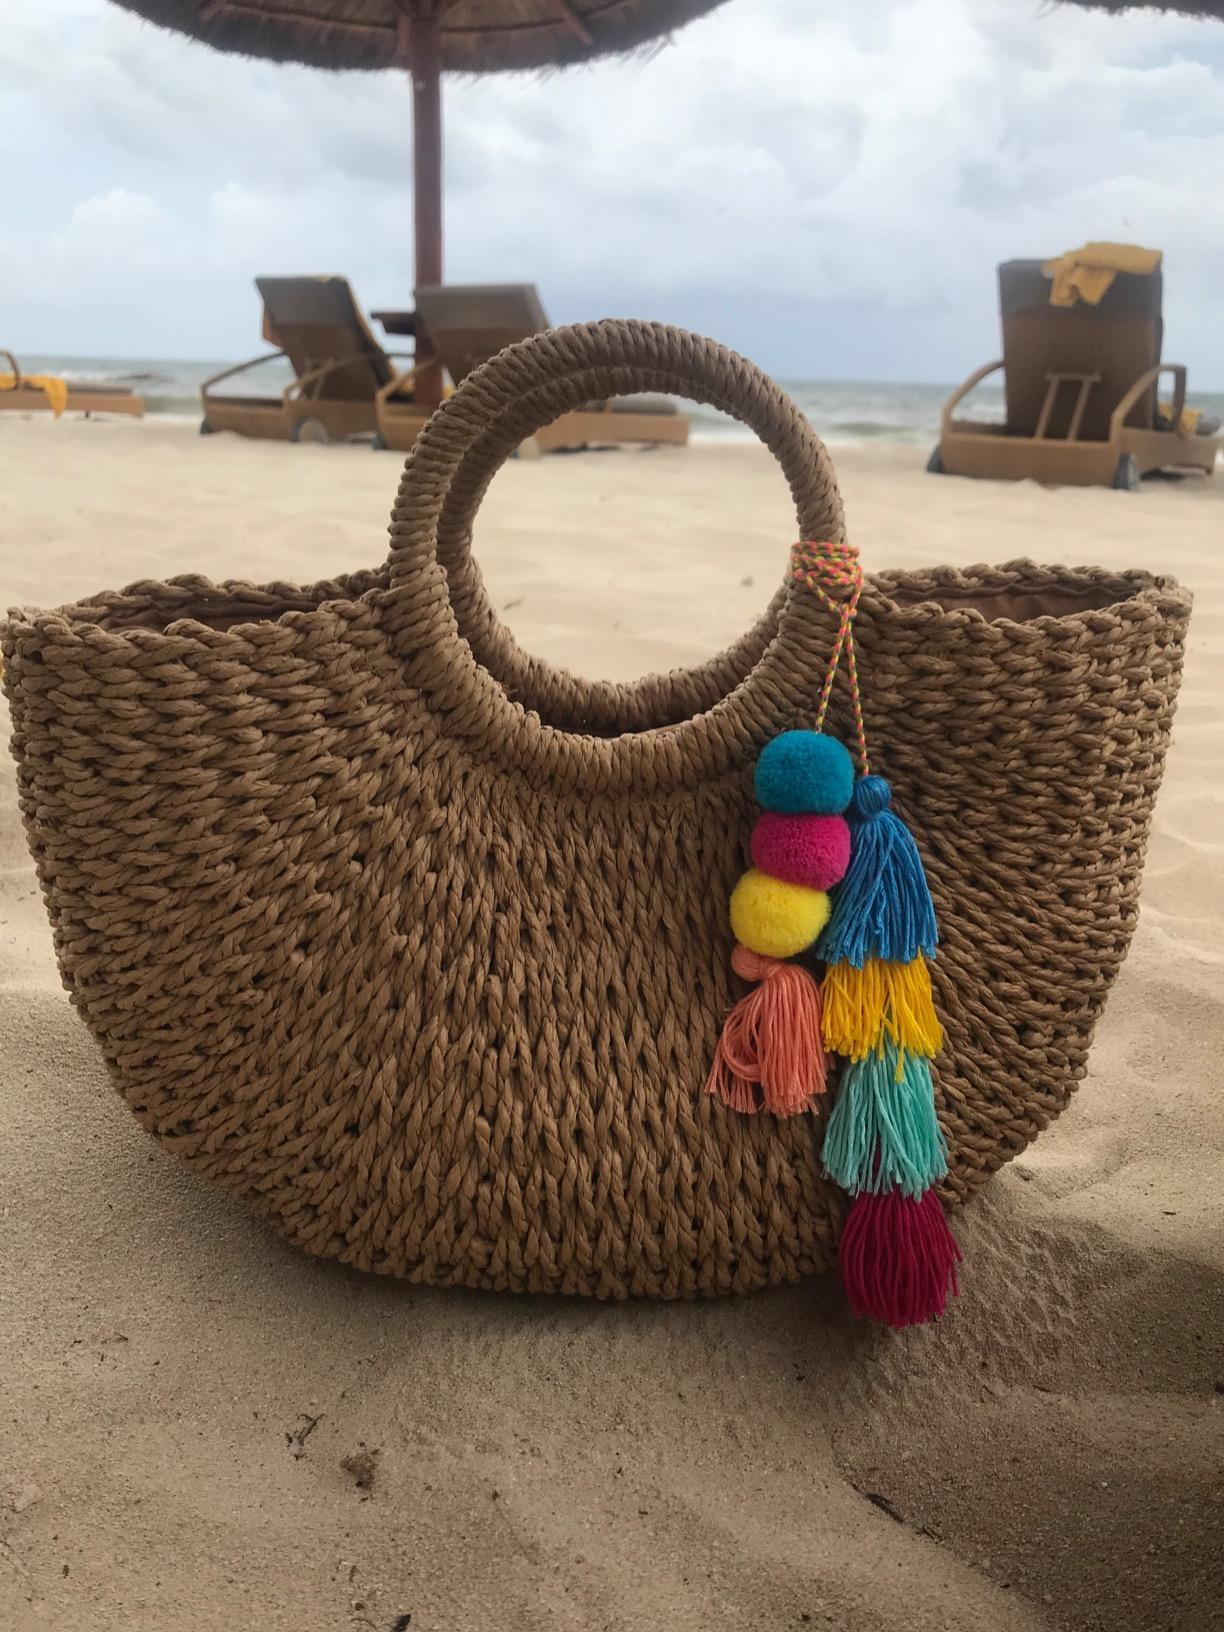 How much small woven wicker bags quality